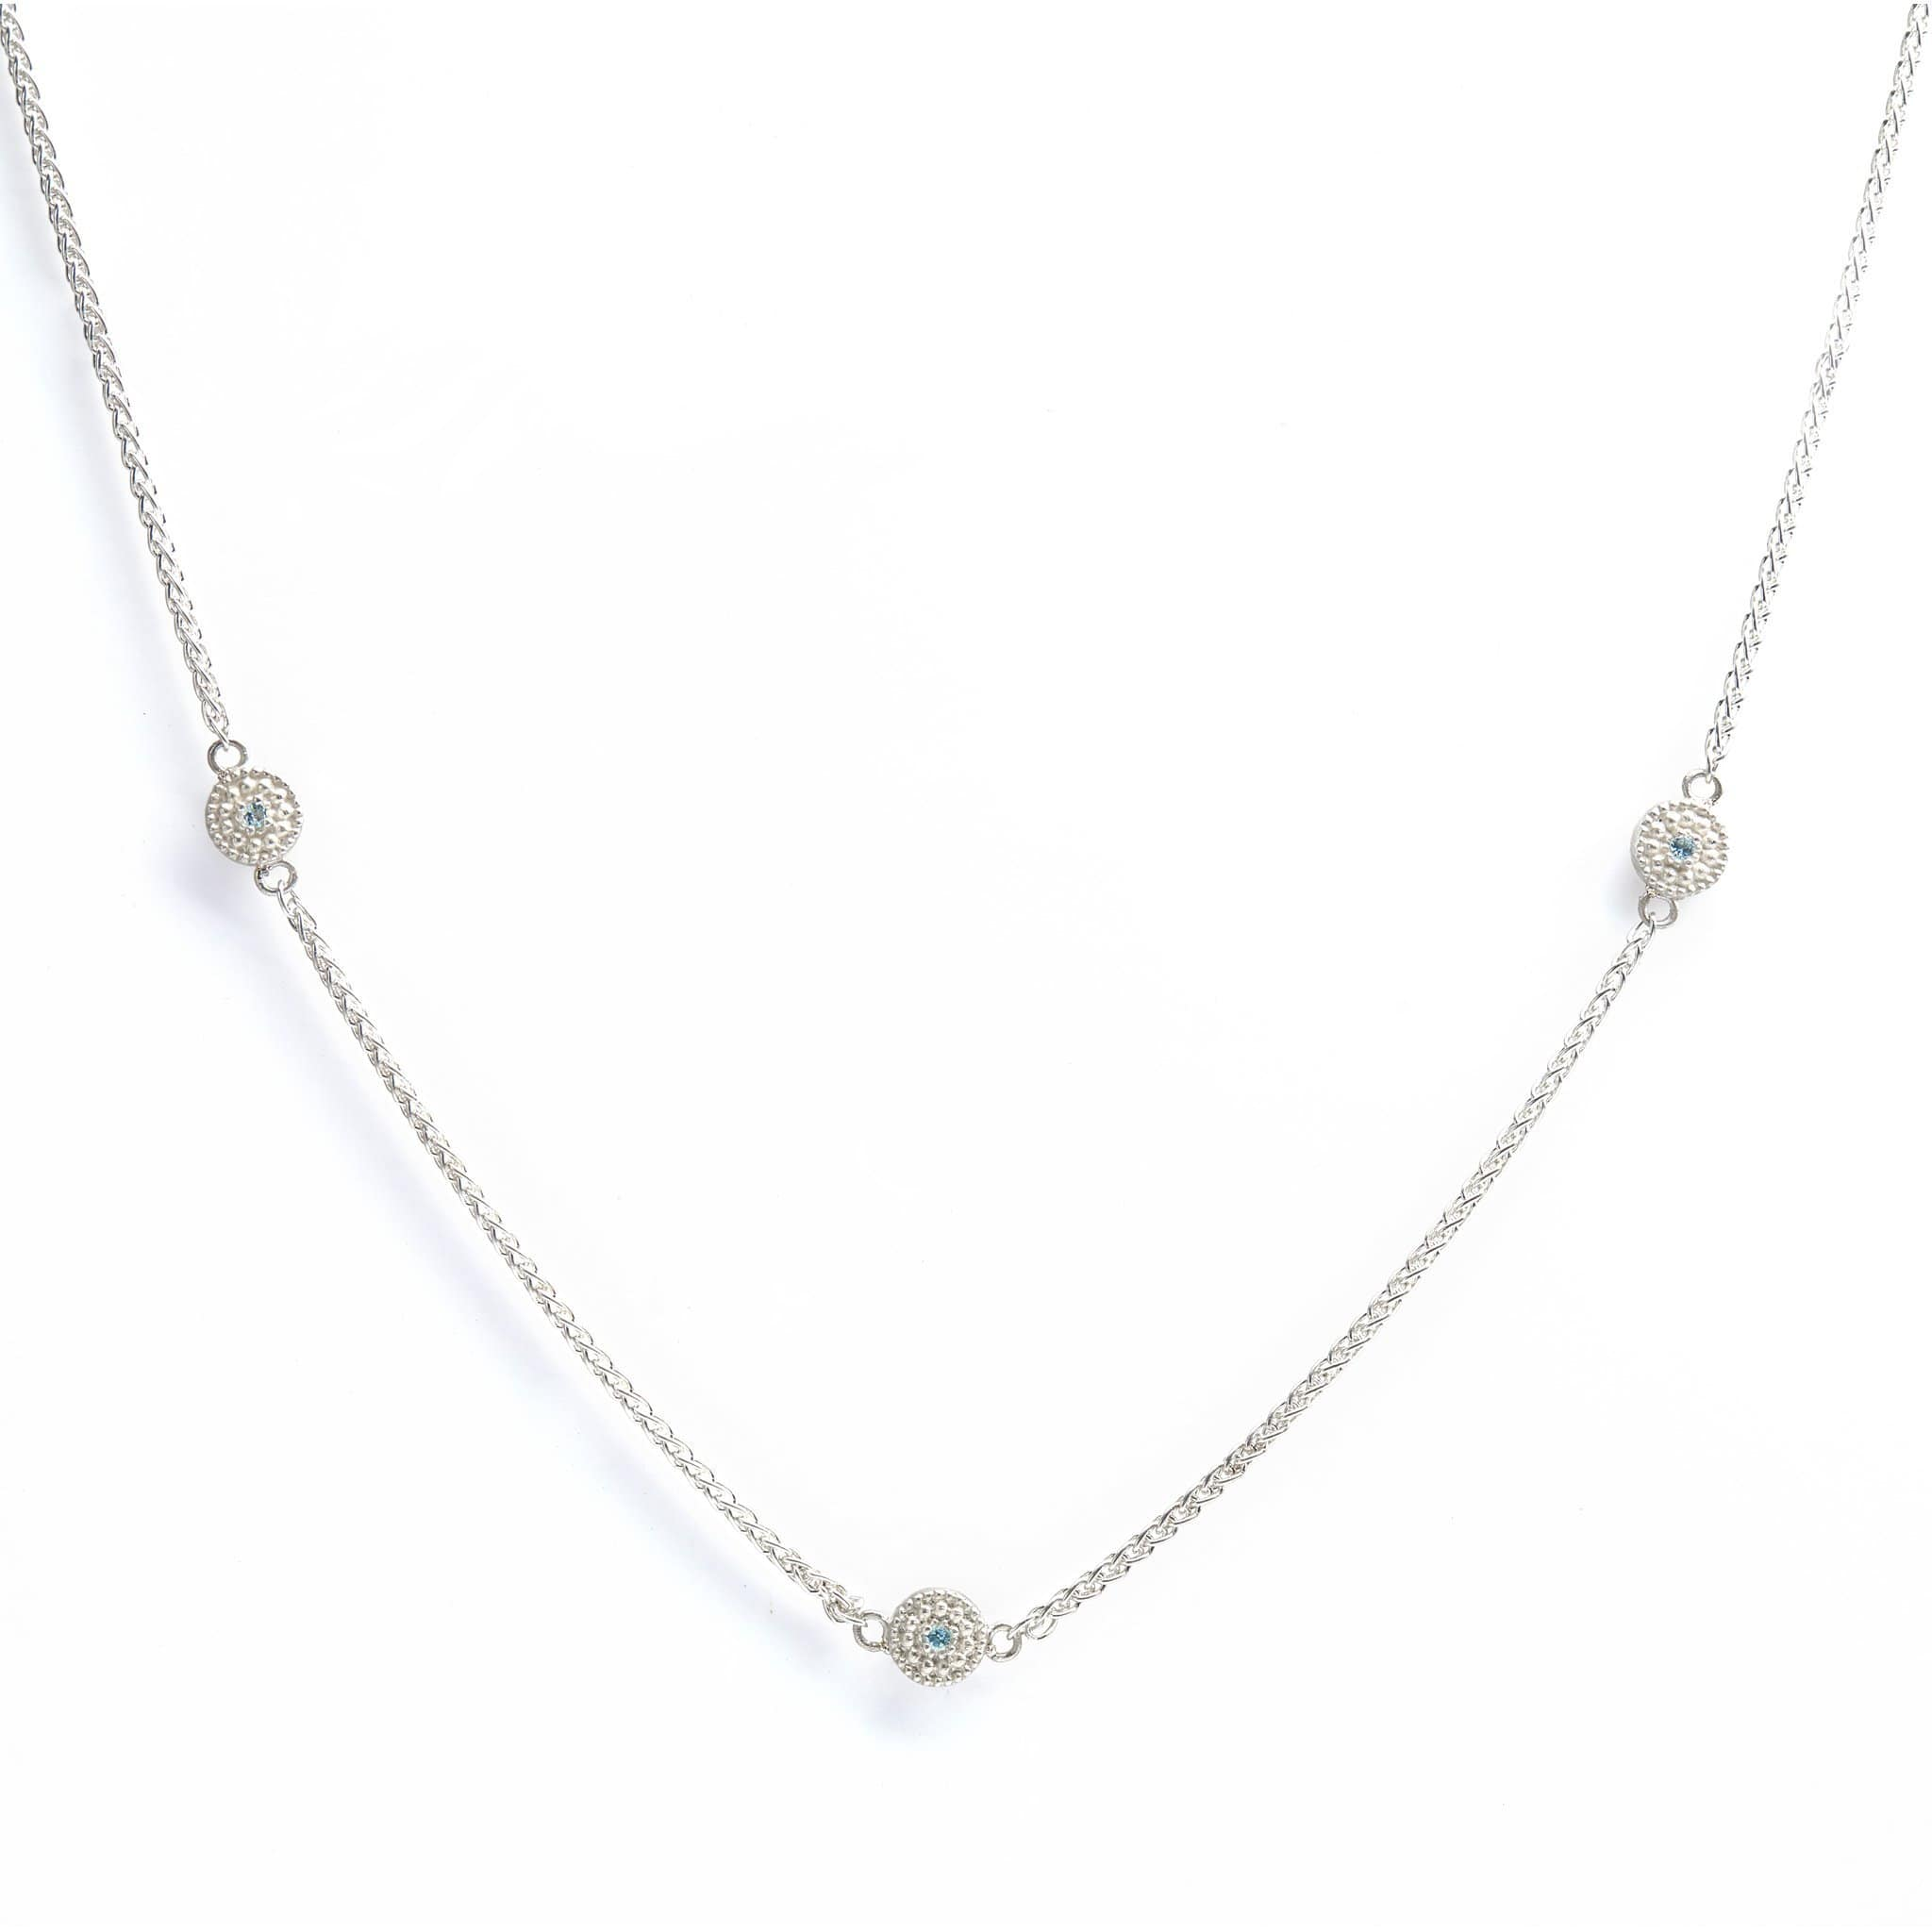 The Reverso Trio Necklace - Diamonds and Sapphires